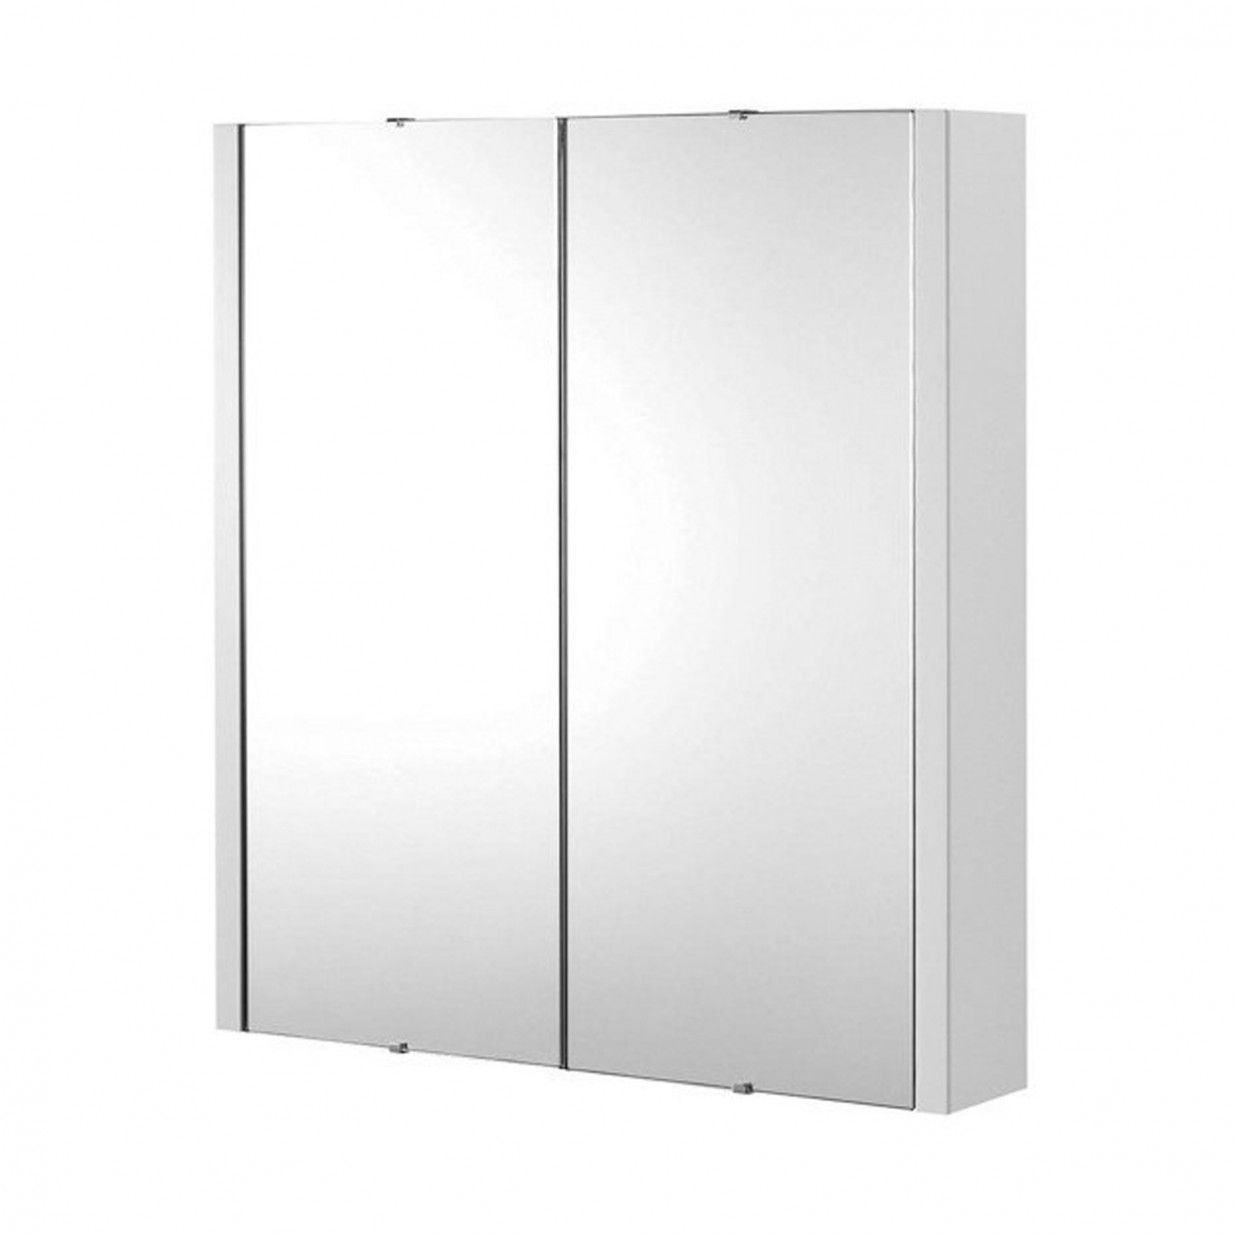 2018 Mirrored Bathroom Wall Cabinets - Best Paint for Interior Walls ...